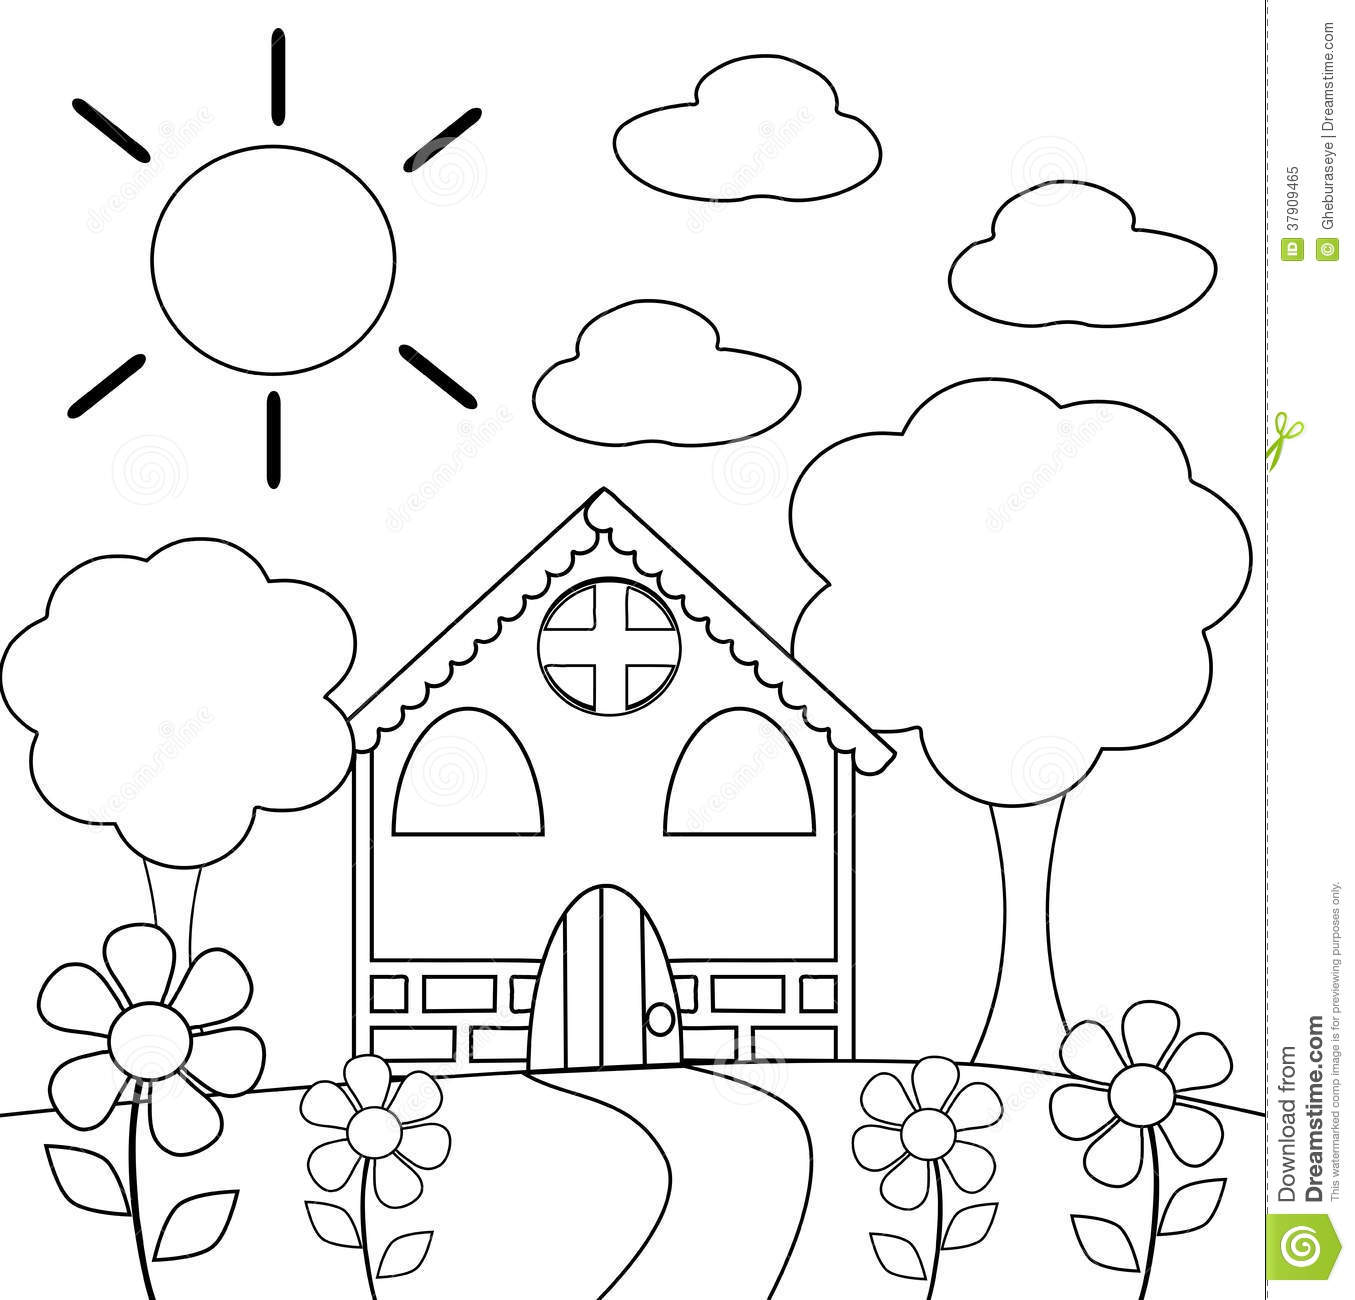 Coloring The House In Black And White Stock Illustration ...